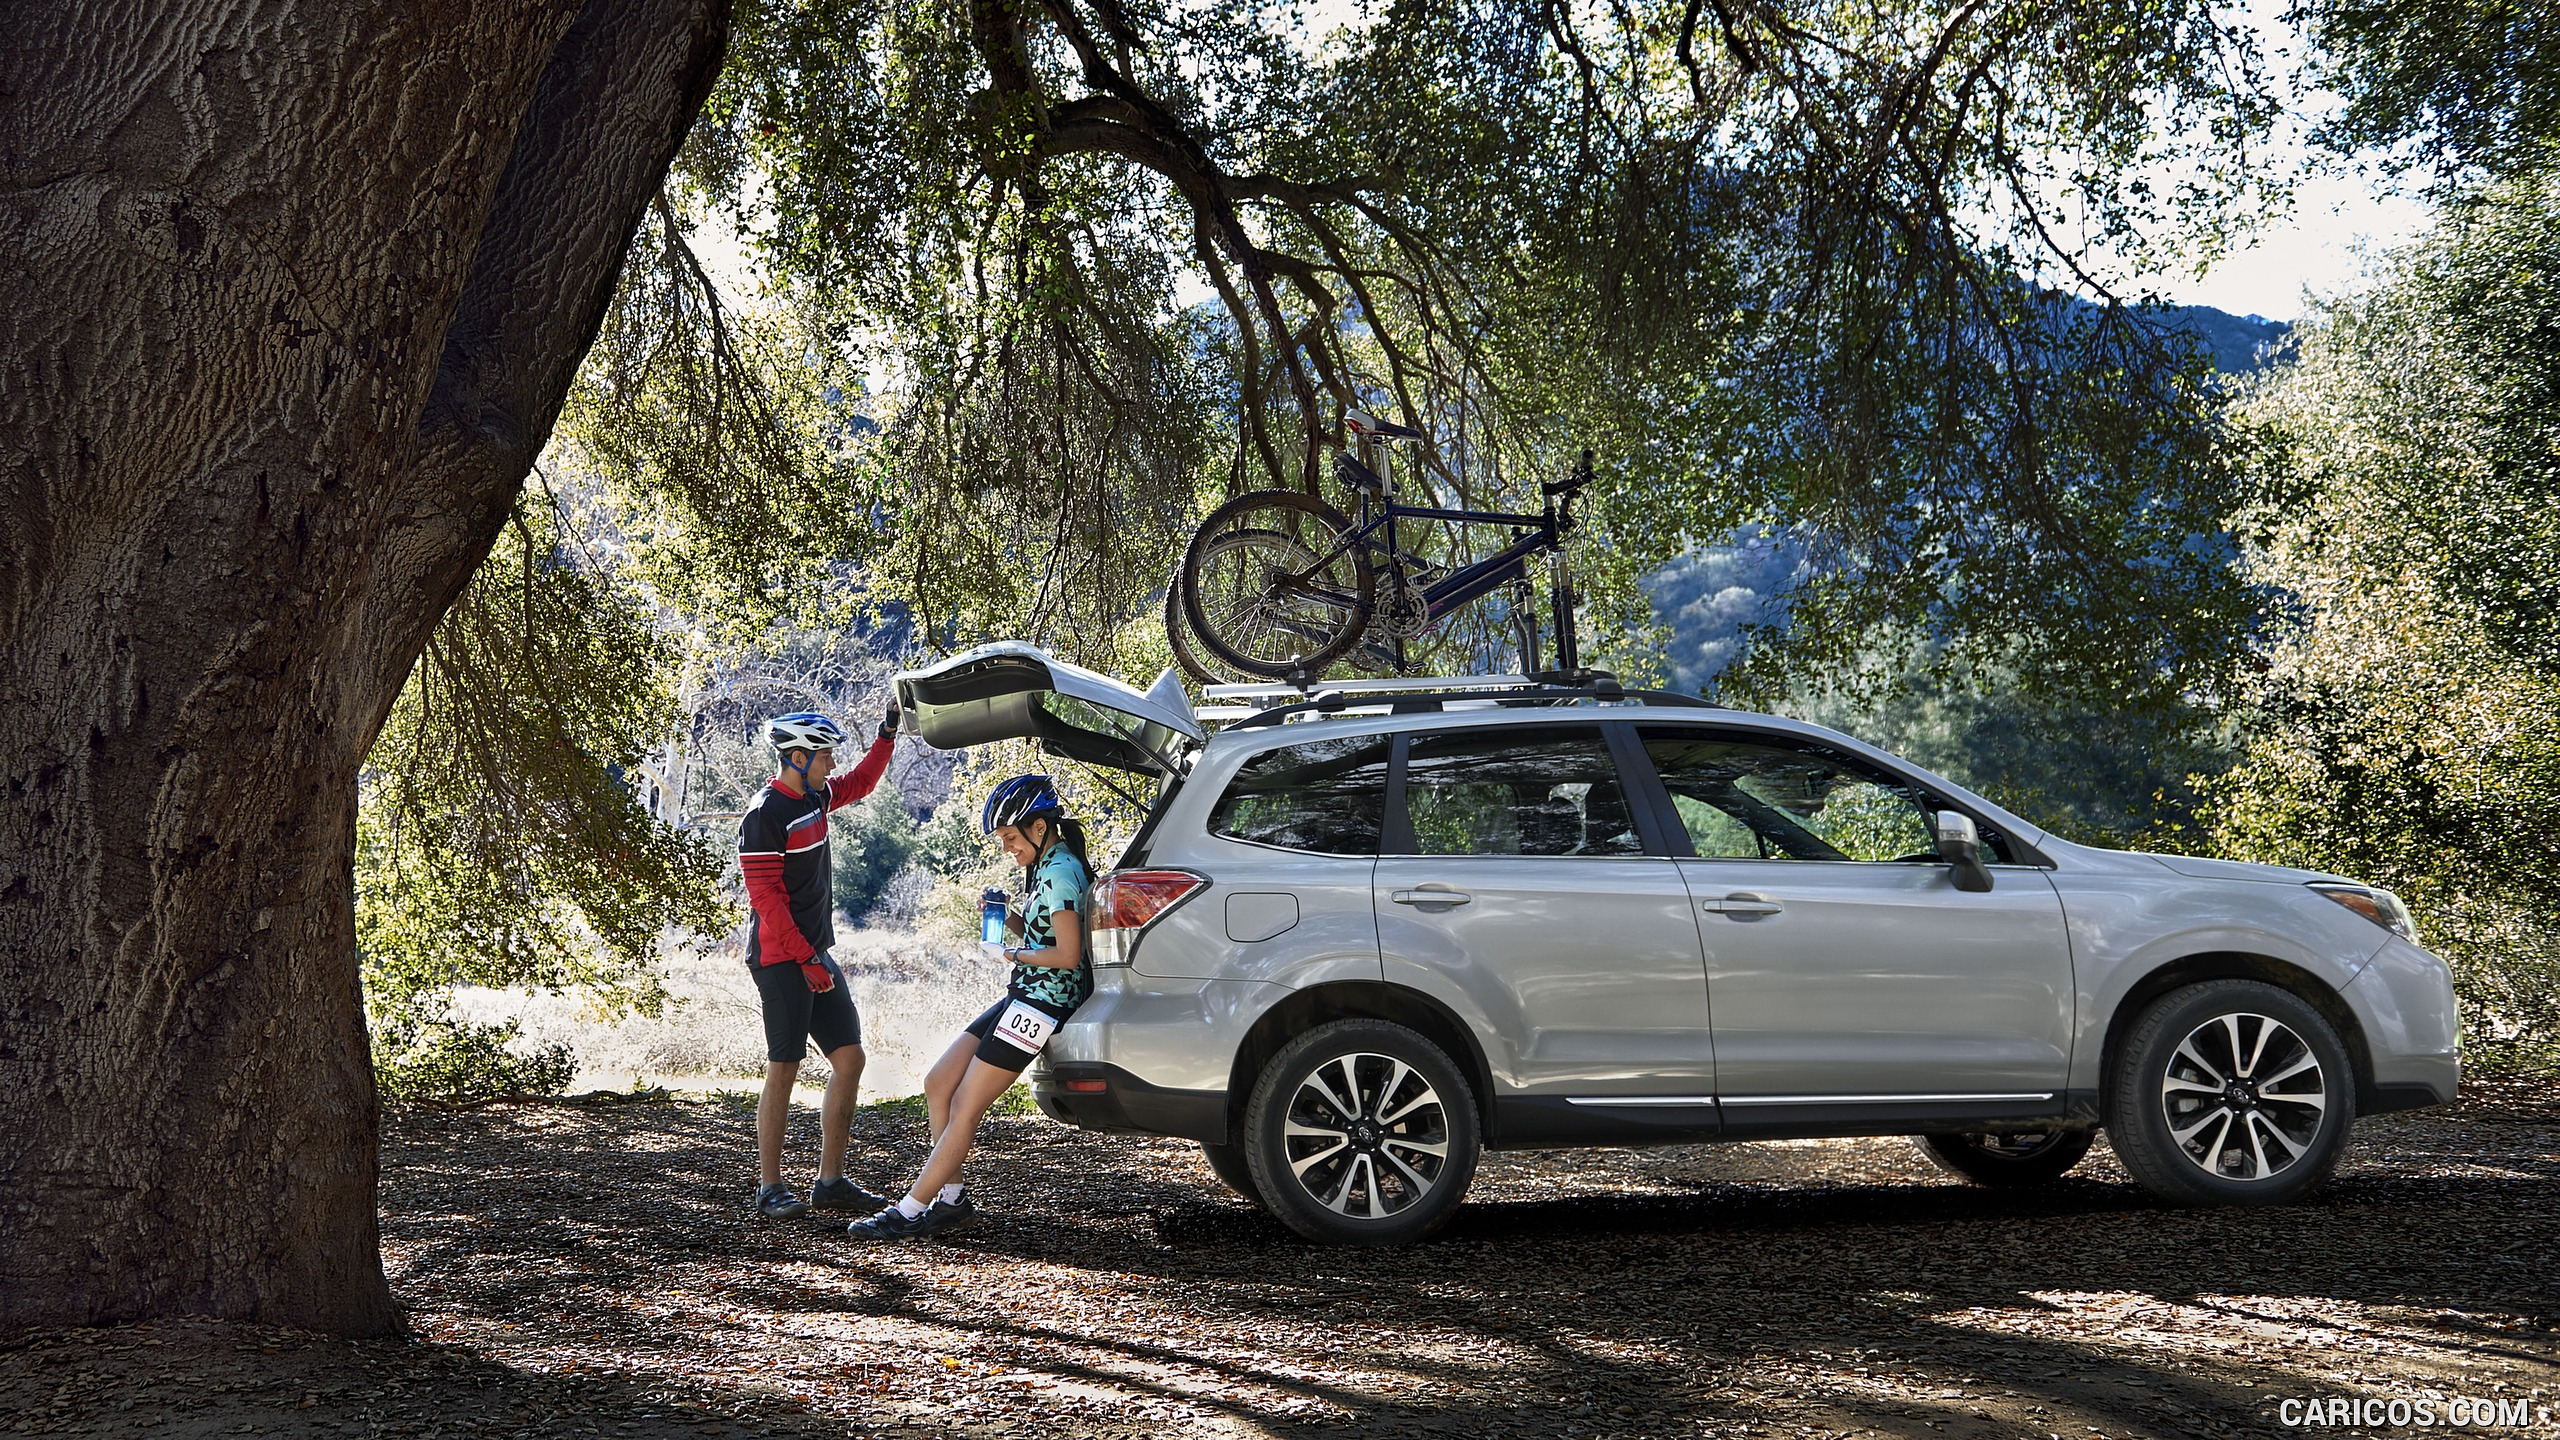 2560x1440 - Subaru Forester Wallpapers 11